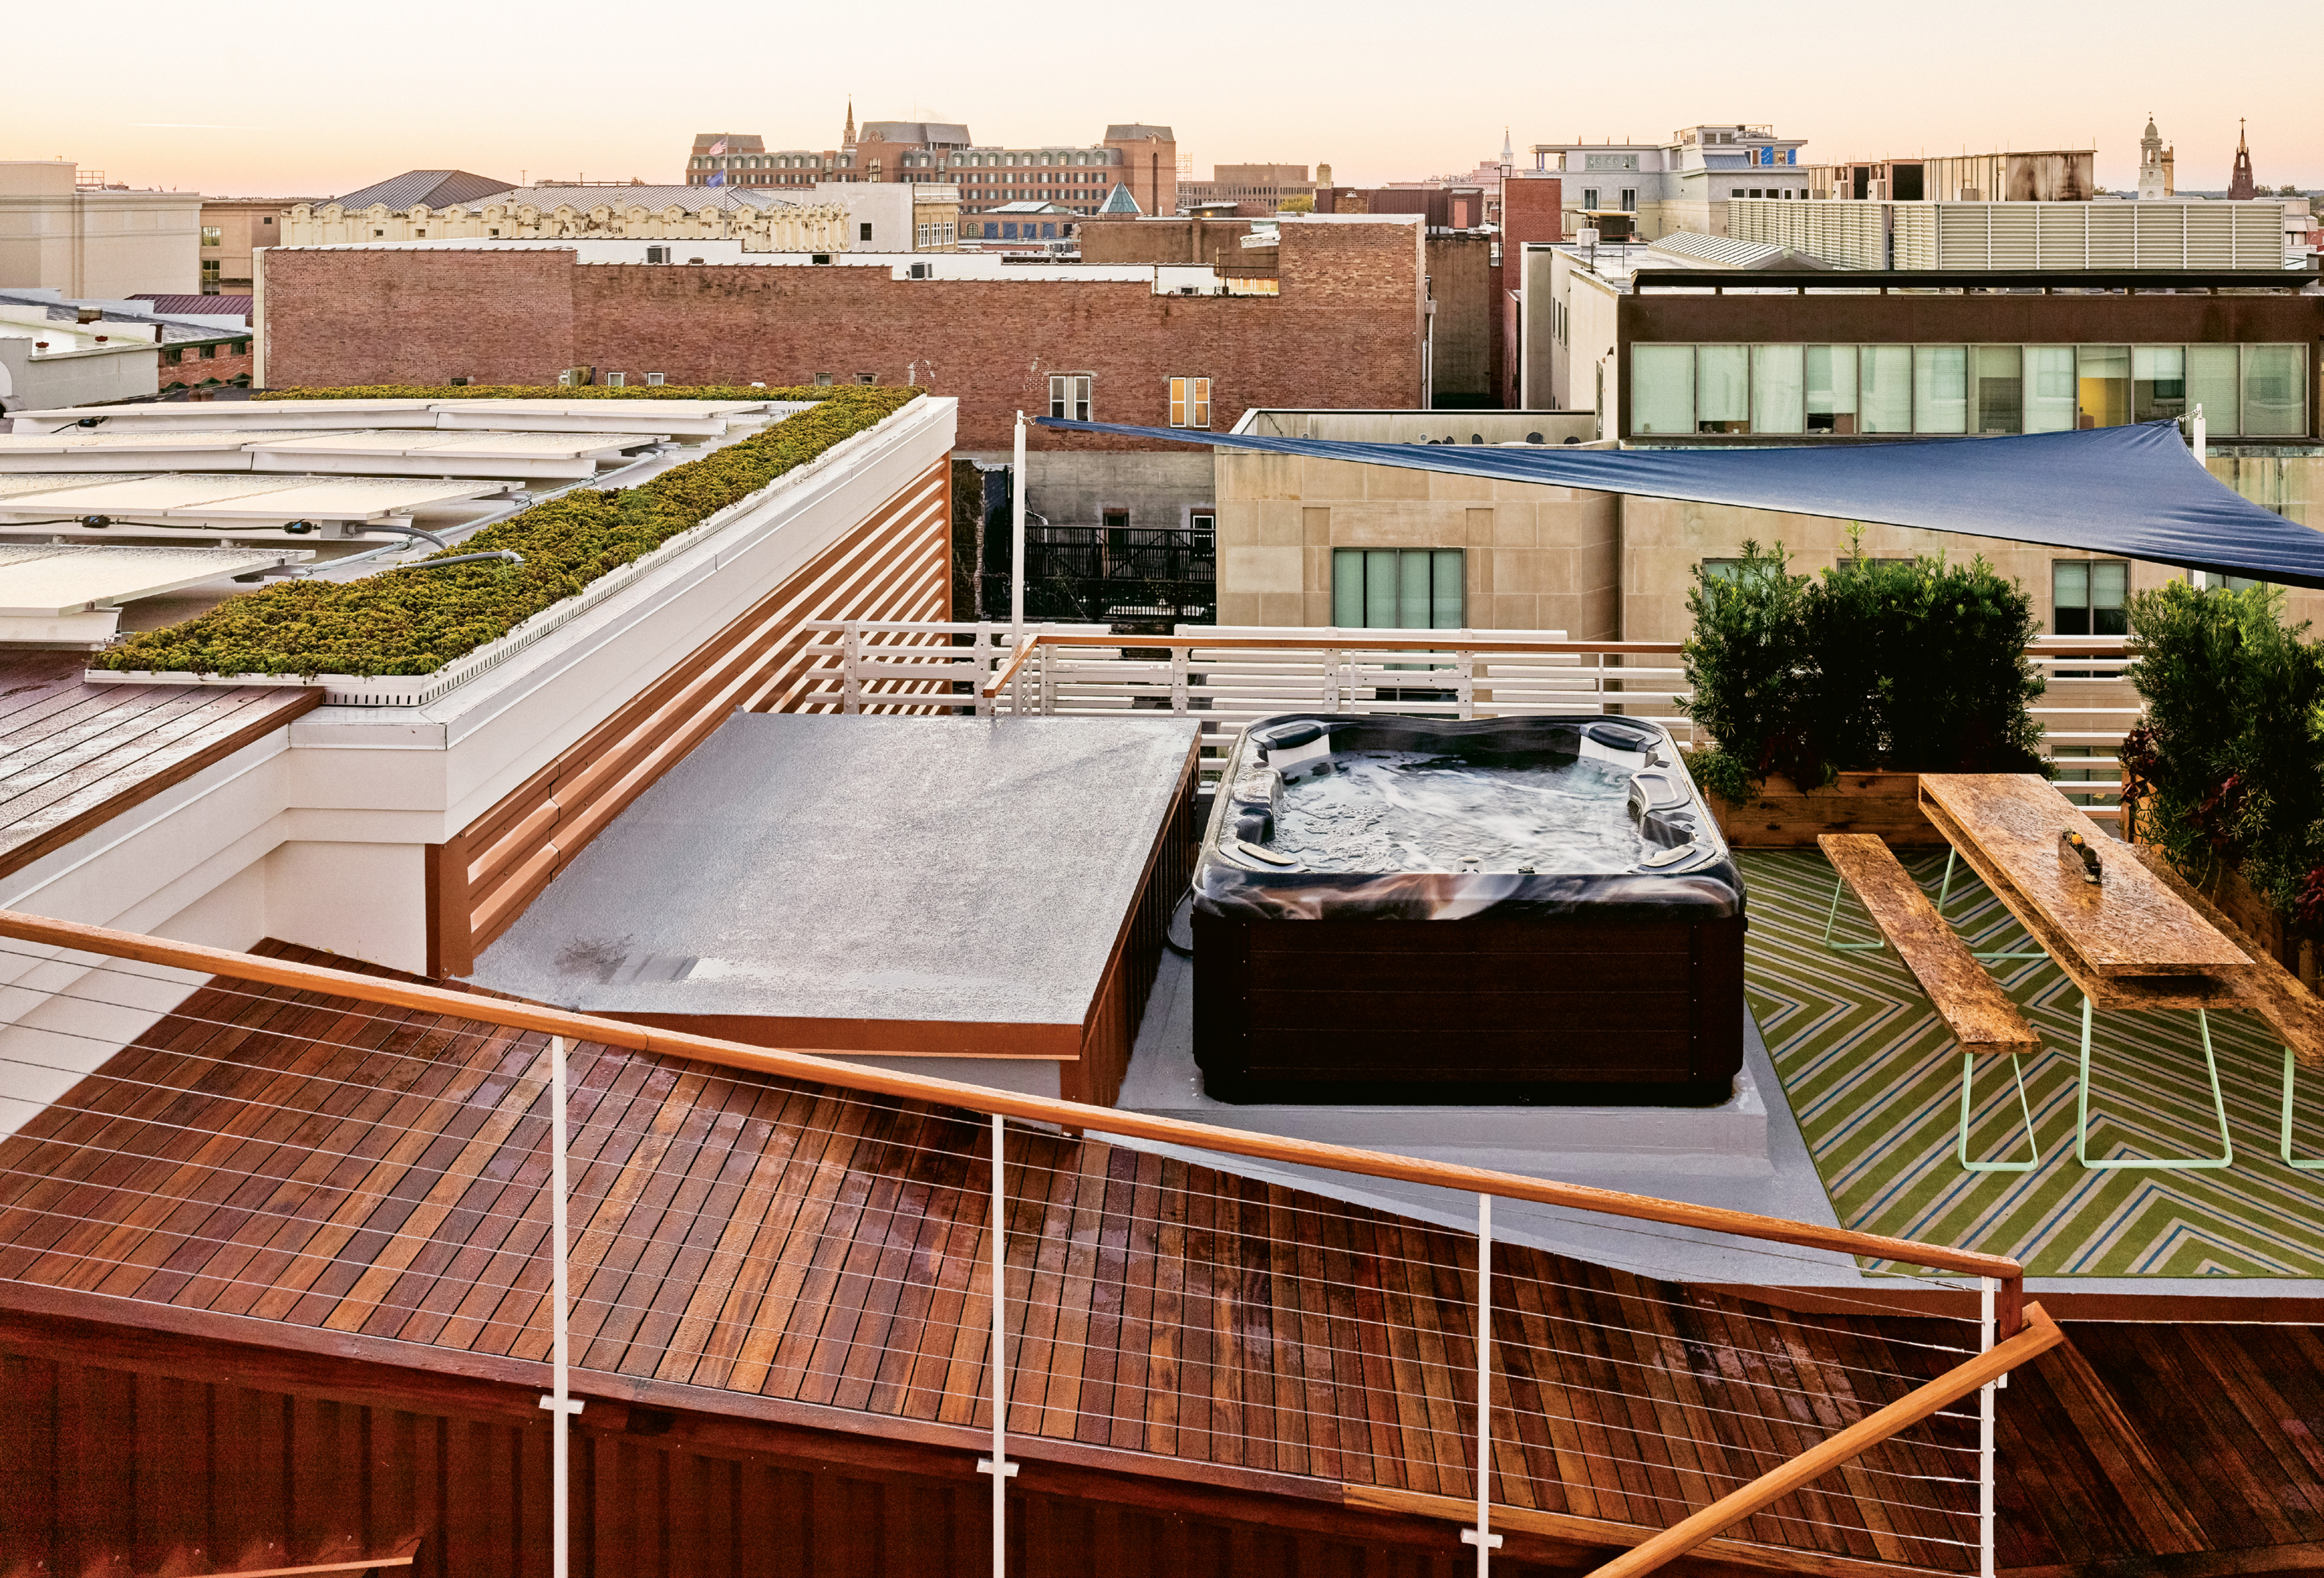 Podocarpus hedges add visual interest and provide some privacy to the rooftop living areas.